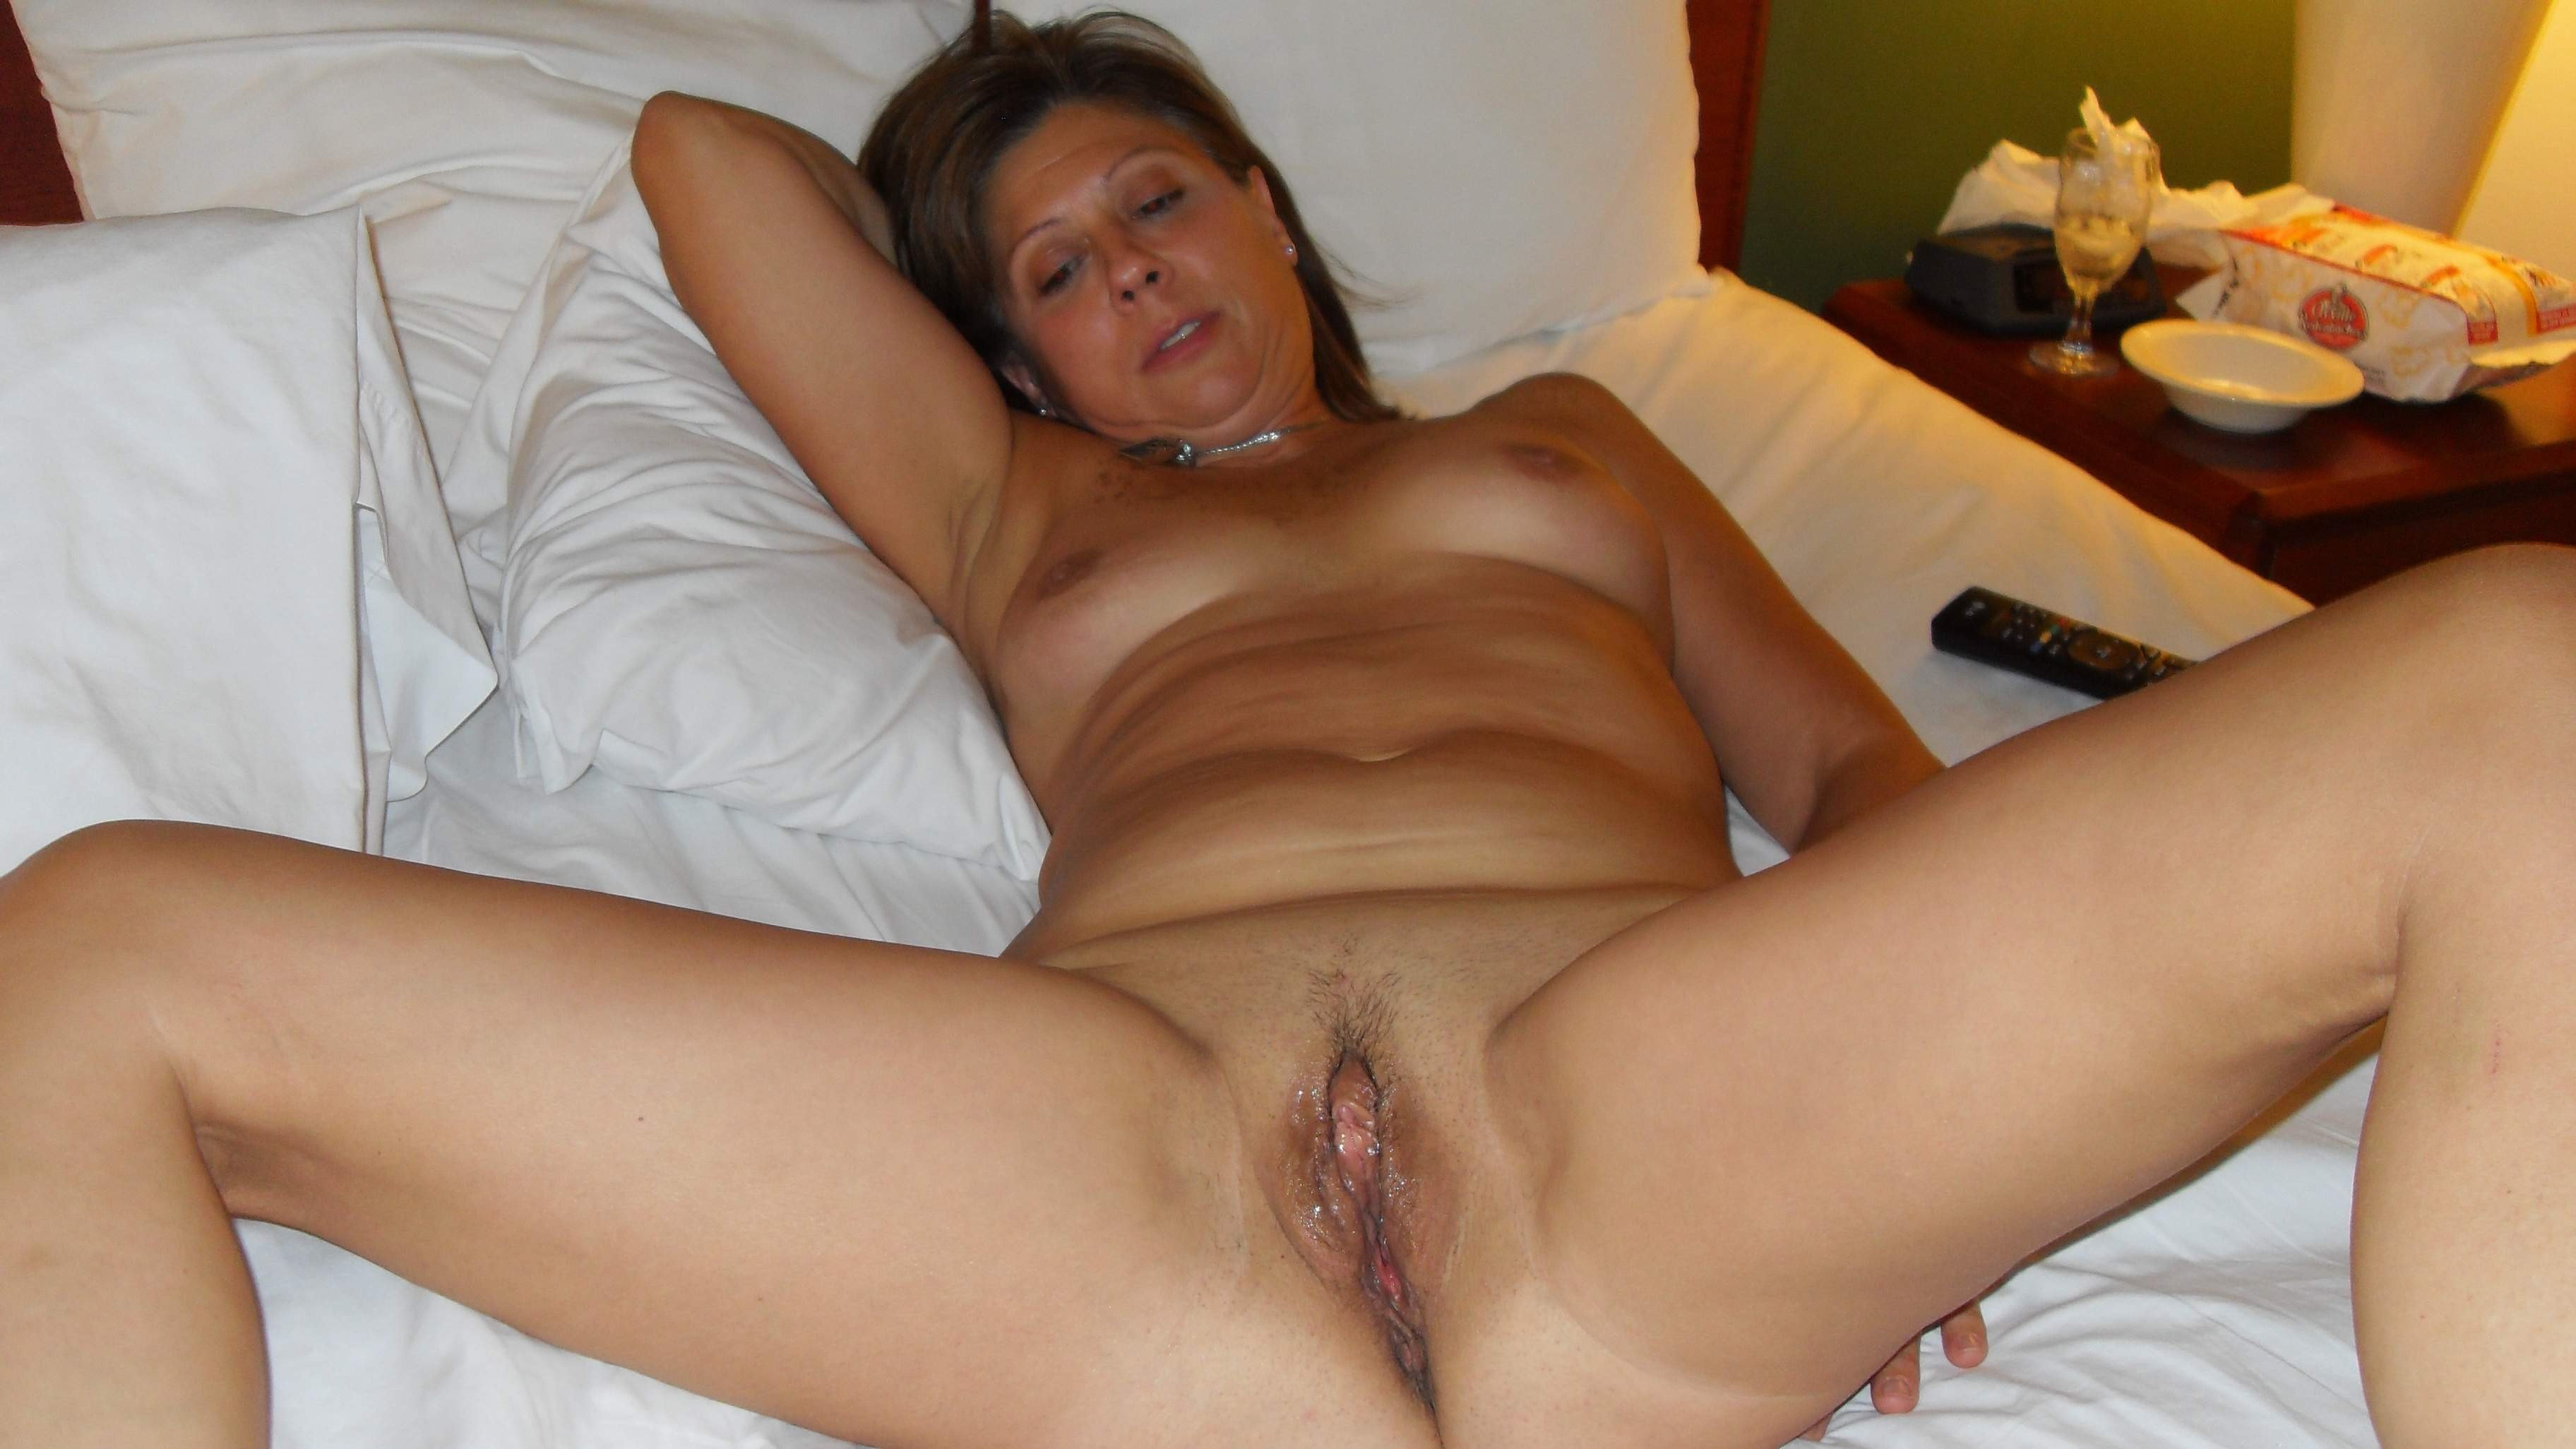 Photo of nude women s pussy